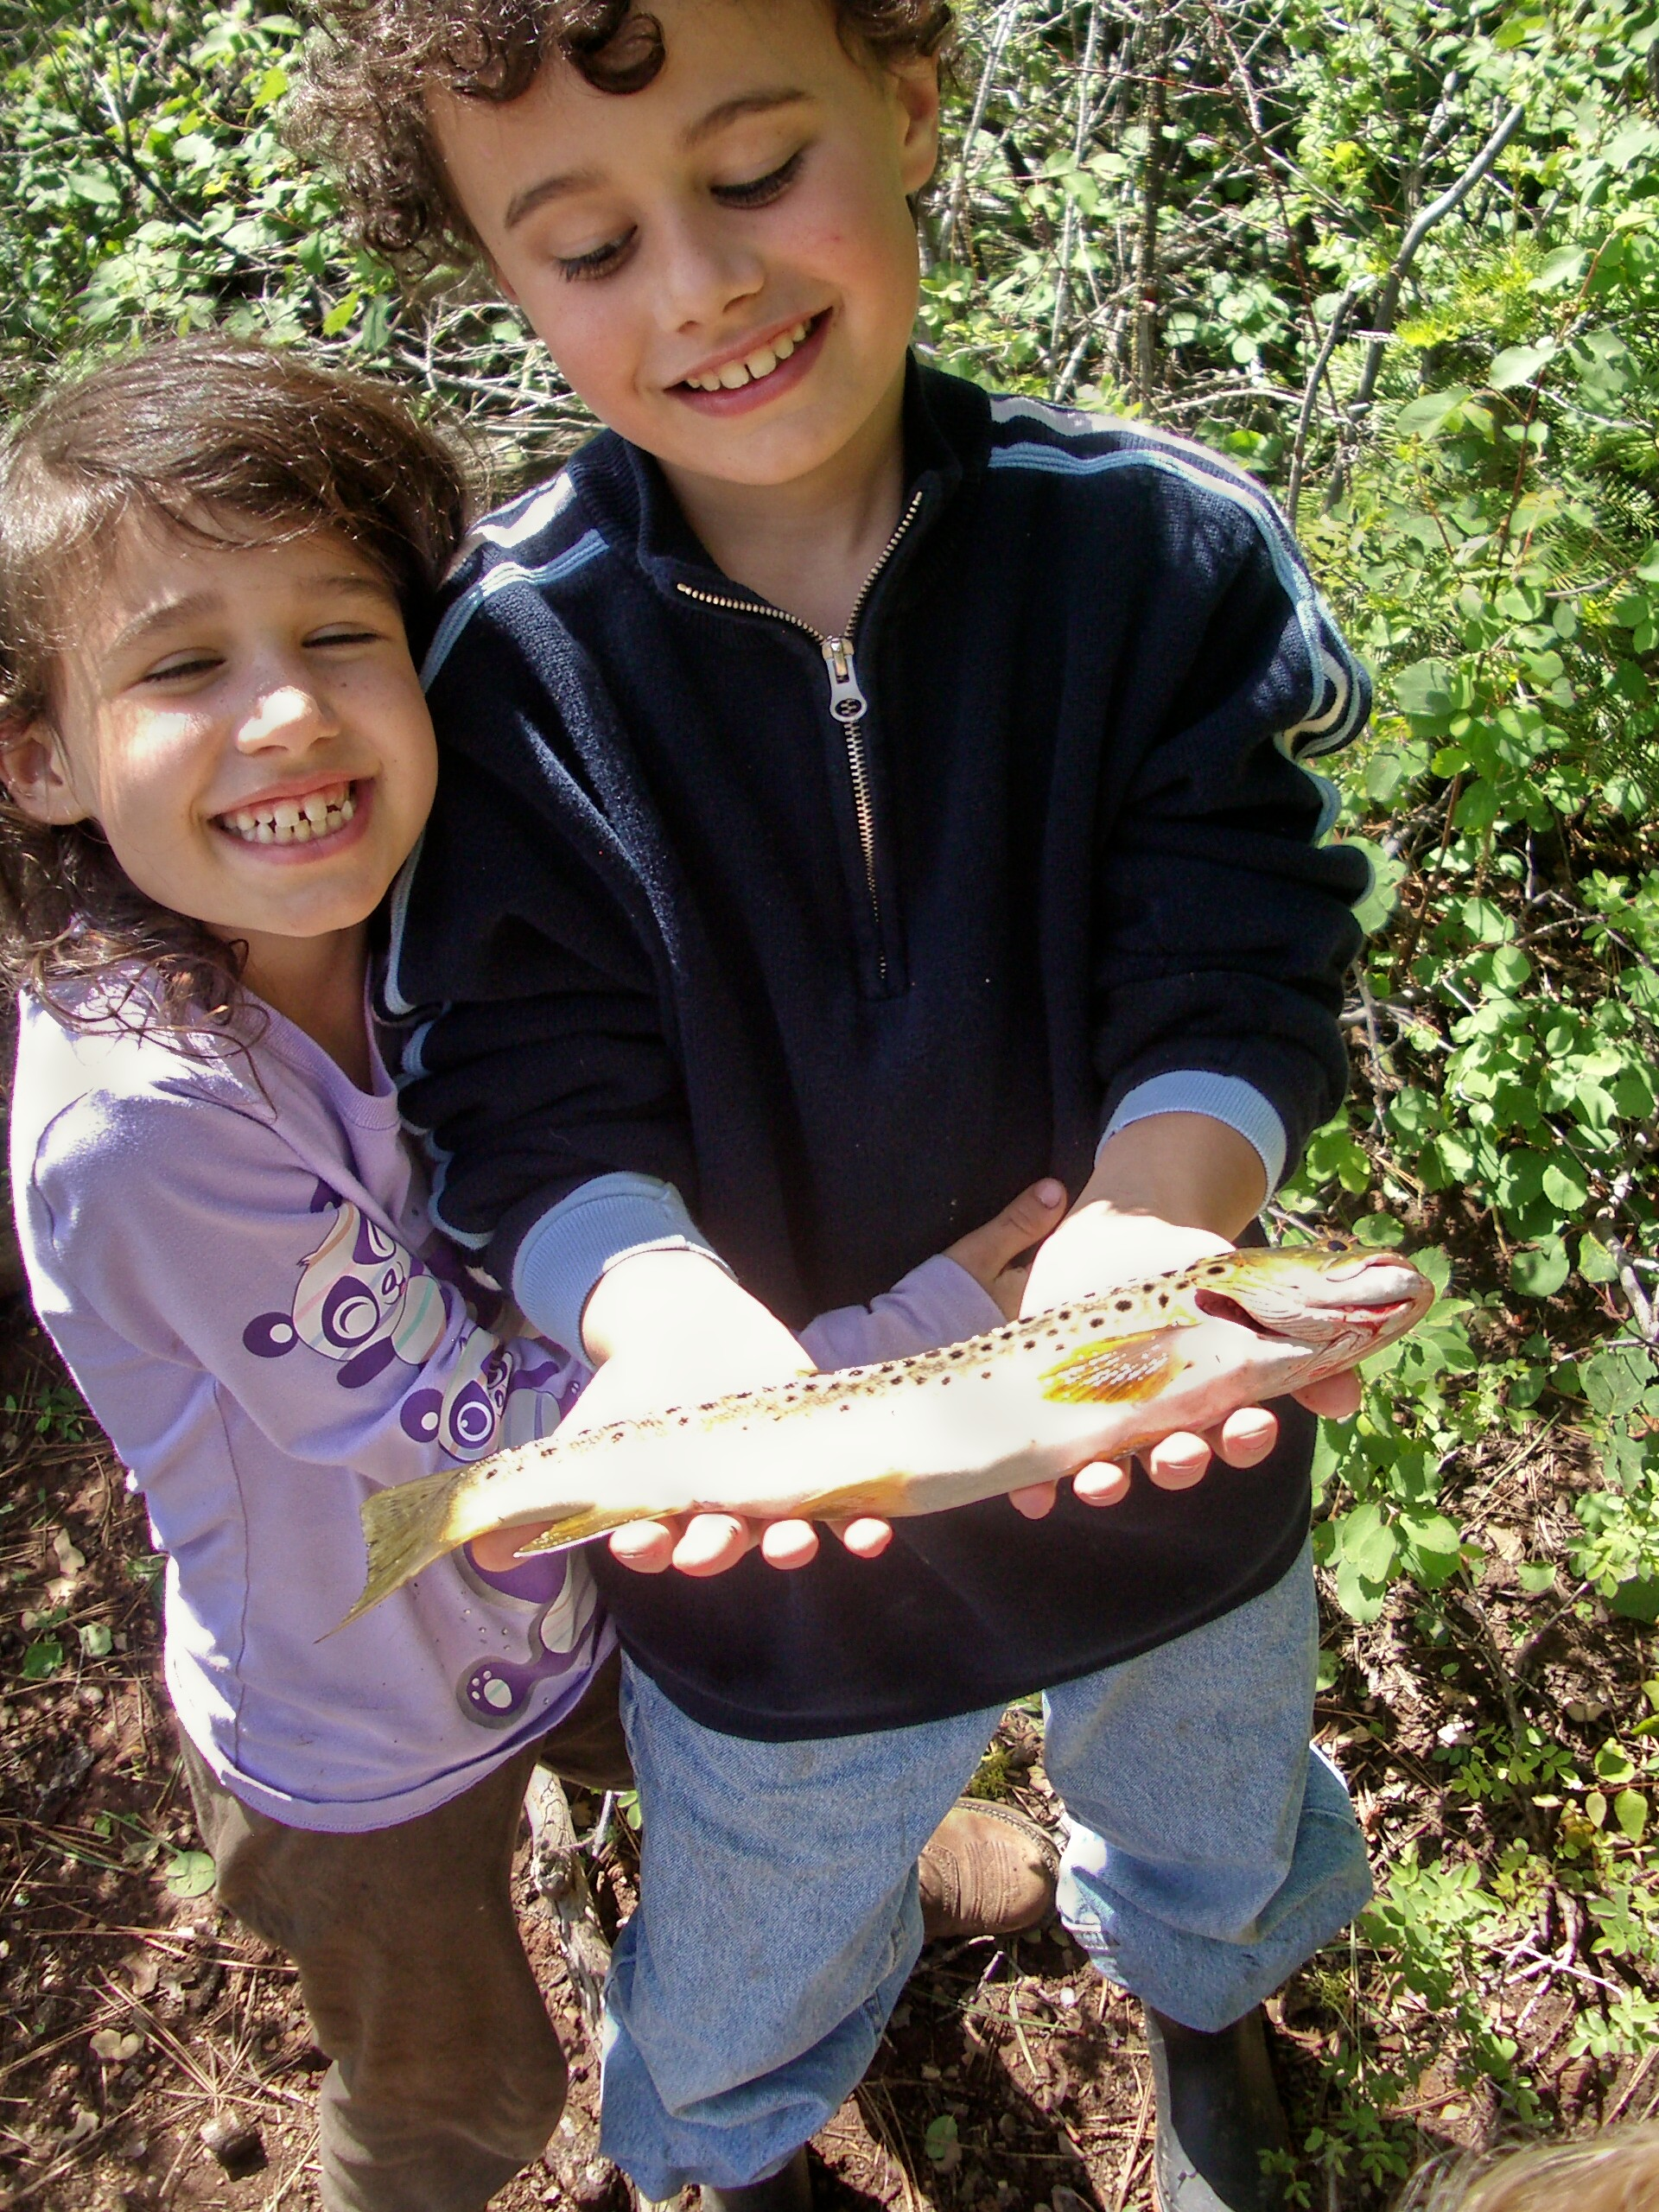 A boy and his sister with big smiles hold out a fish they caught.